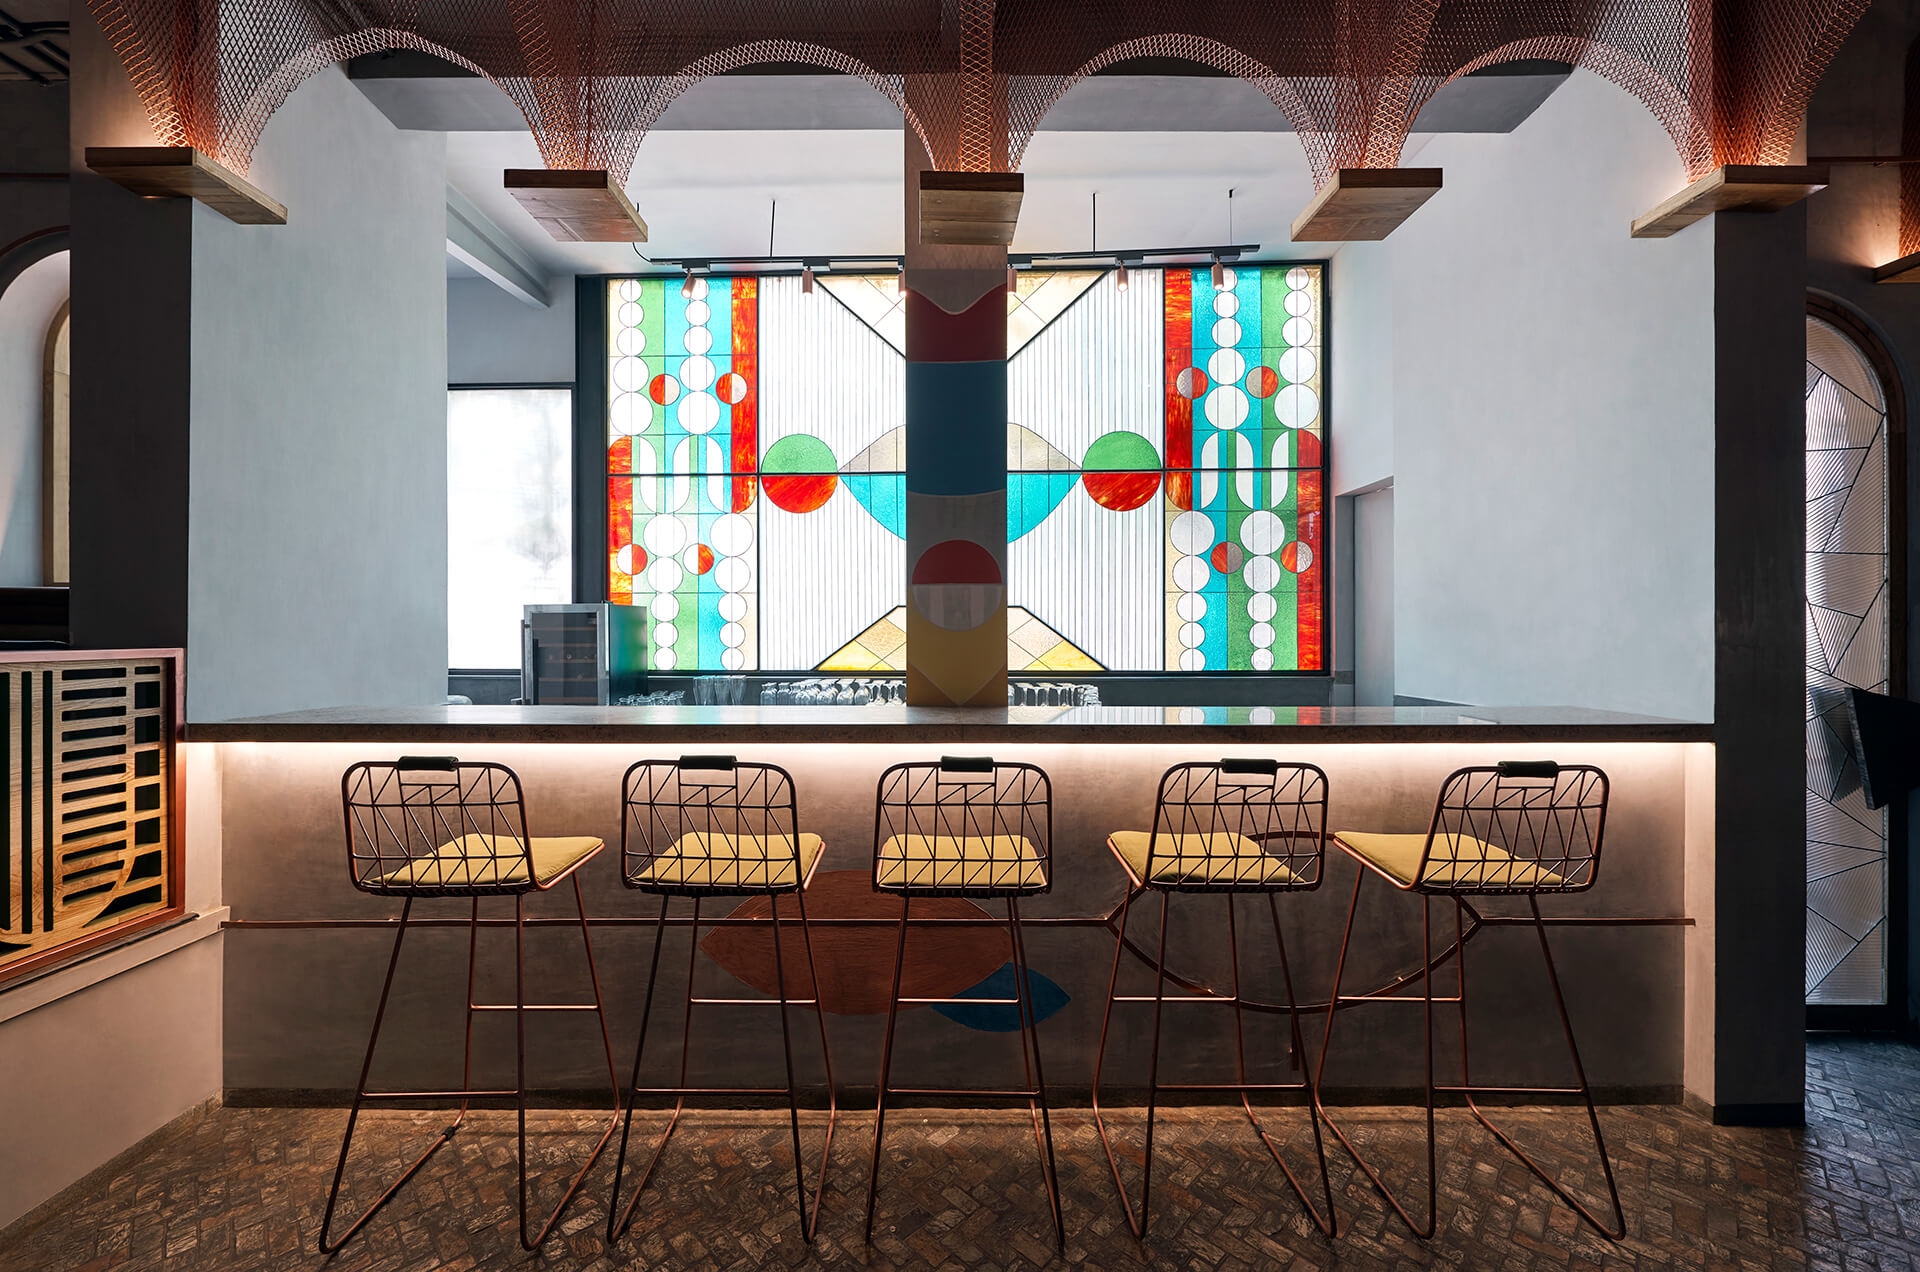 Stained glass window at the back of the bar  | Bengaluru, India | FADD Studio | STIRworld